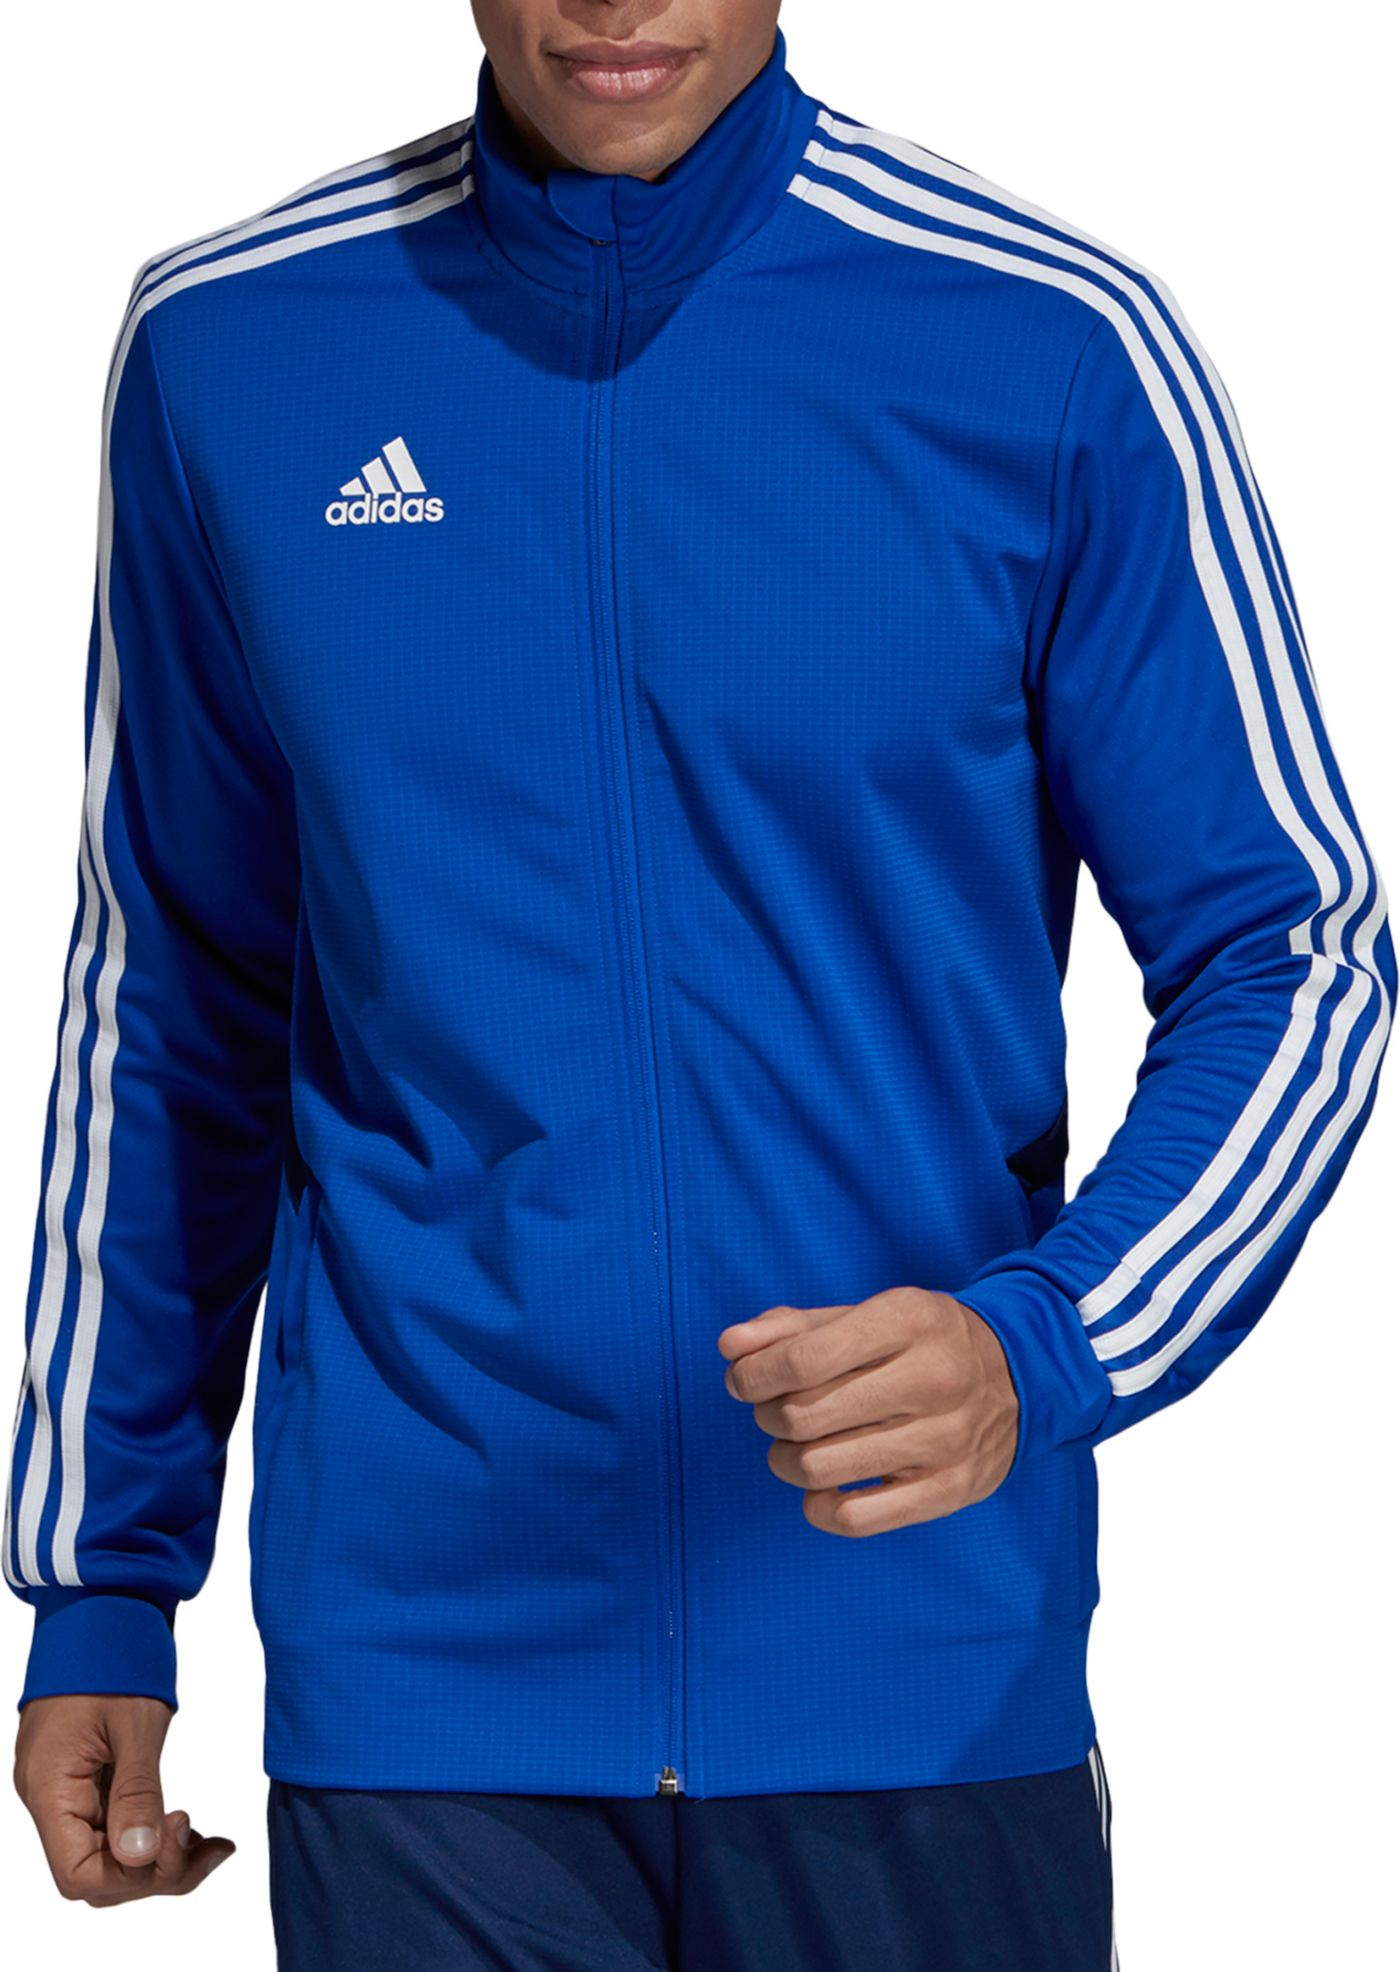 adidas Men's Tiro 19 Training Jacket